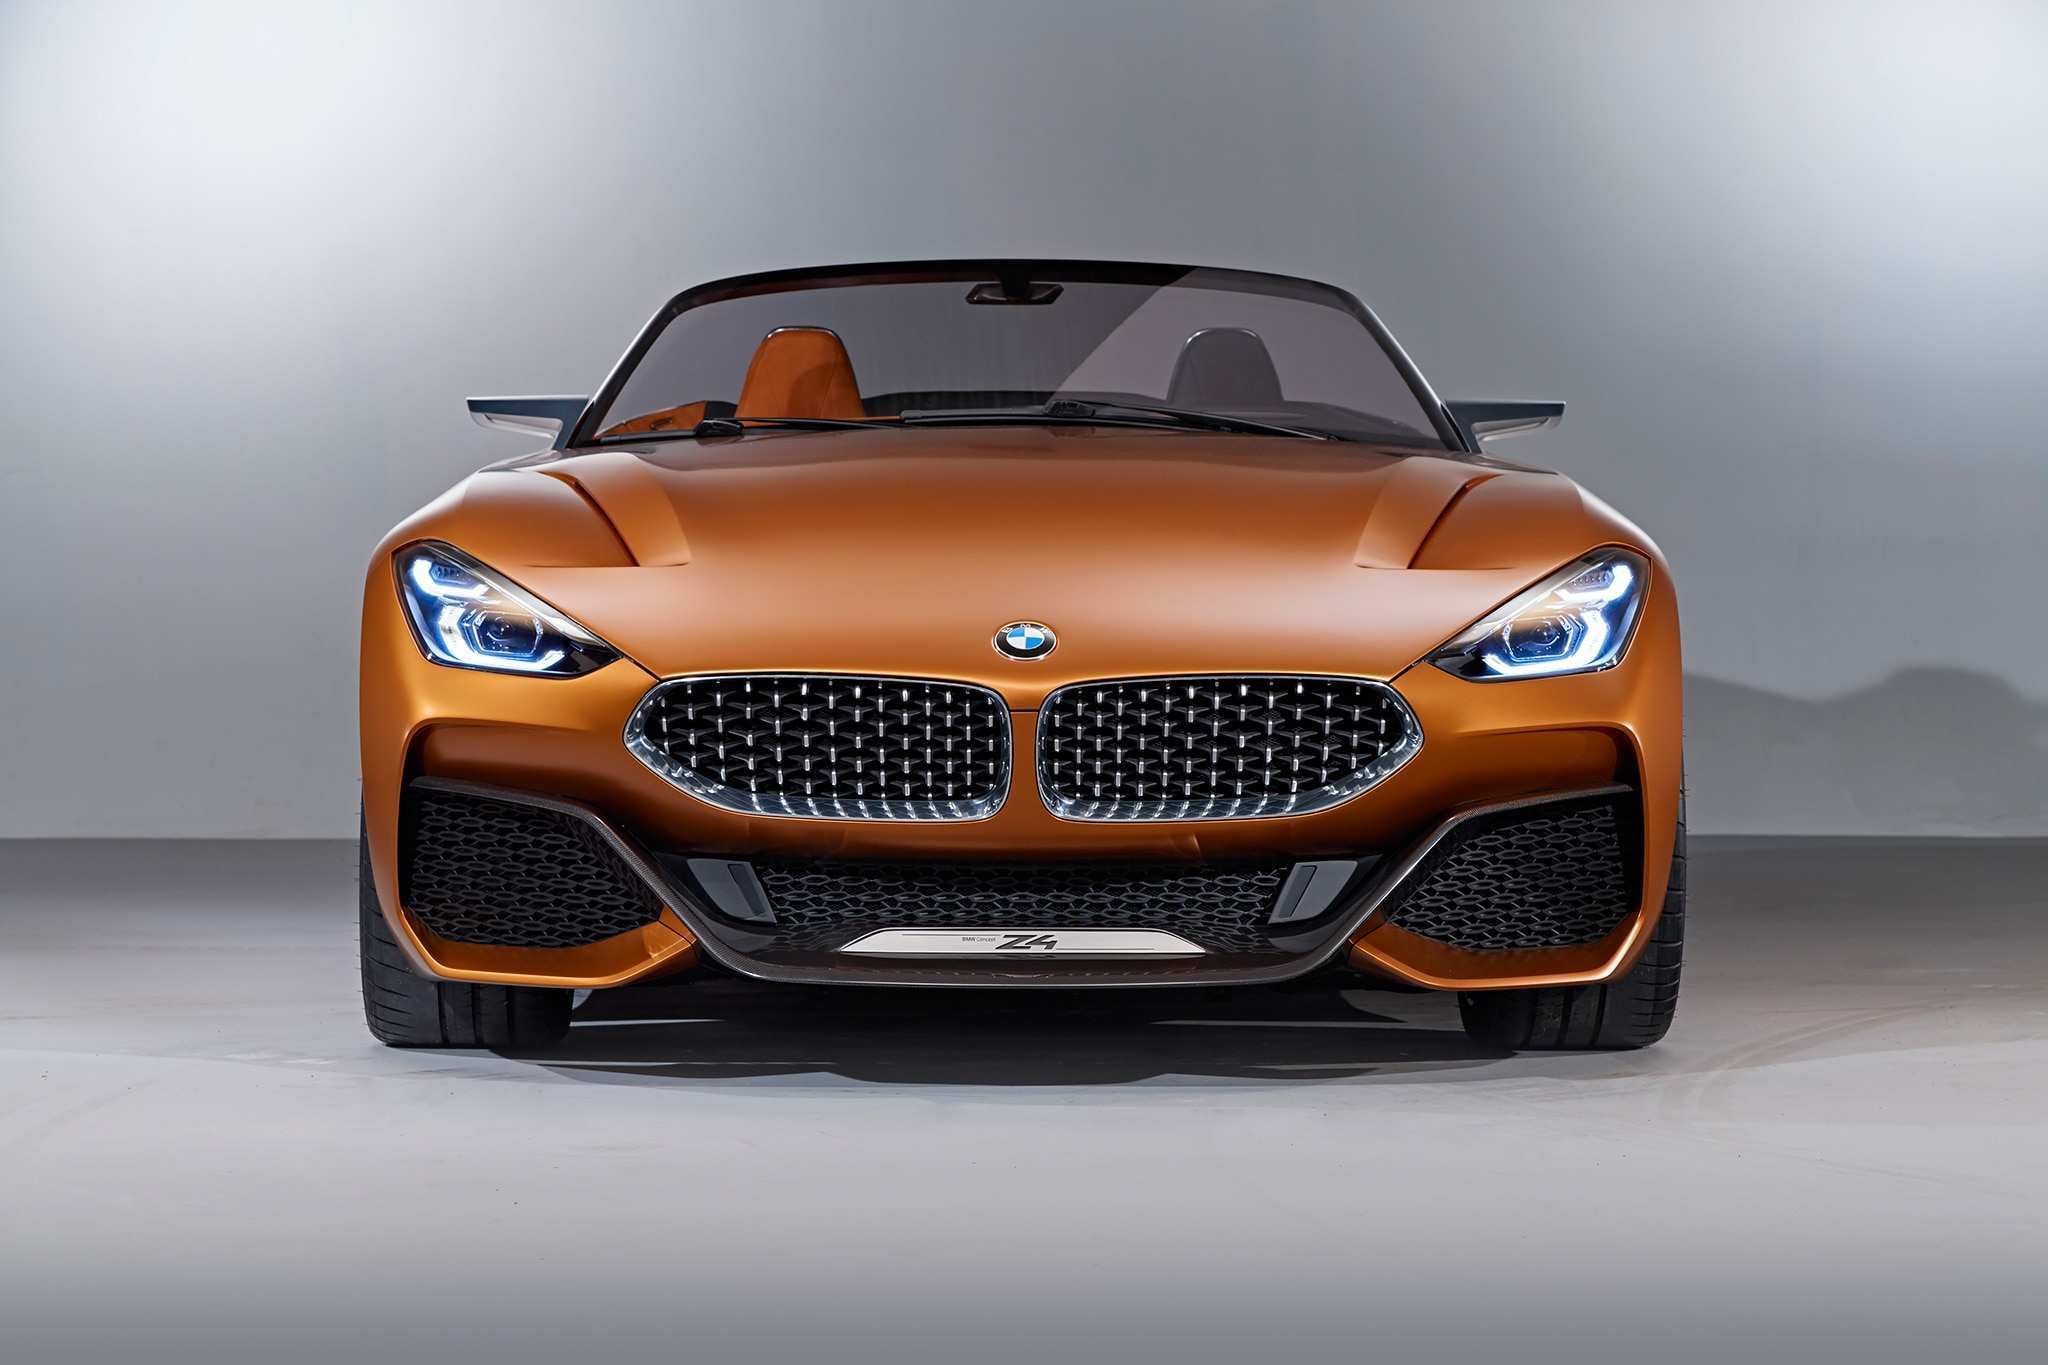 31 Gallery of 2019 Bmw Z4 Concept Model with 2019 Bmw Z4 Concept